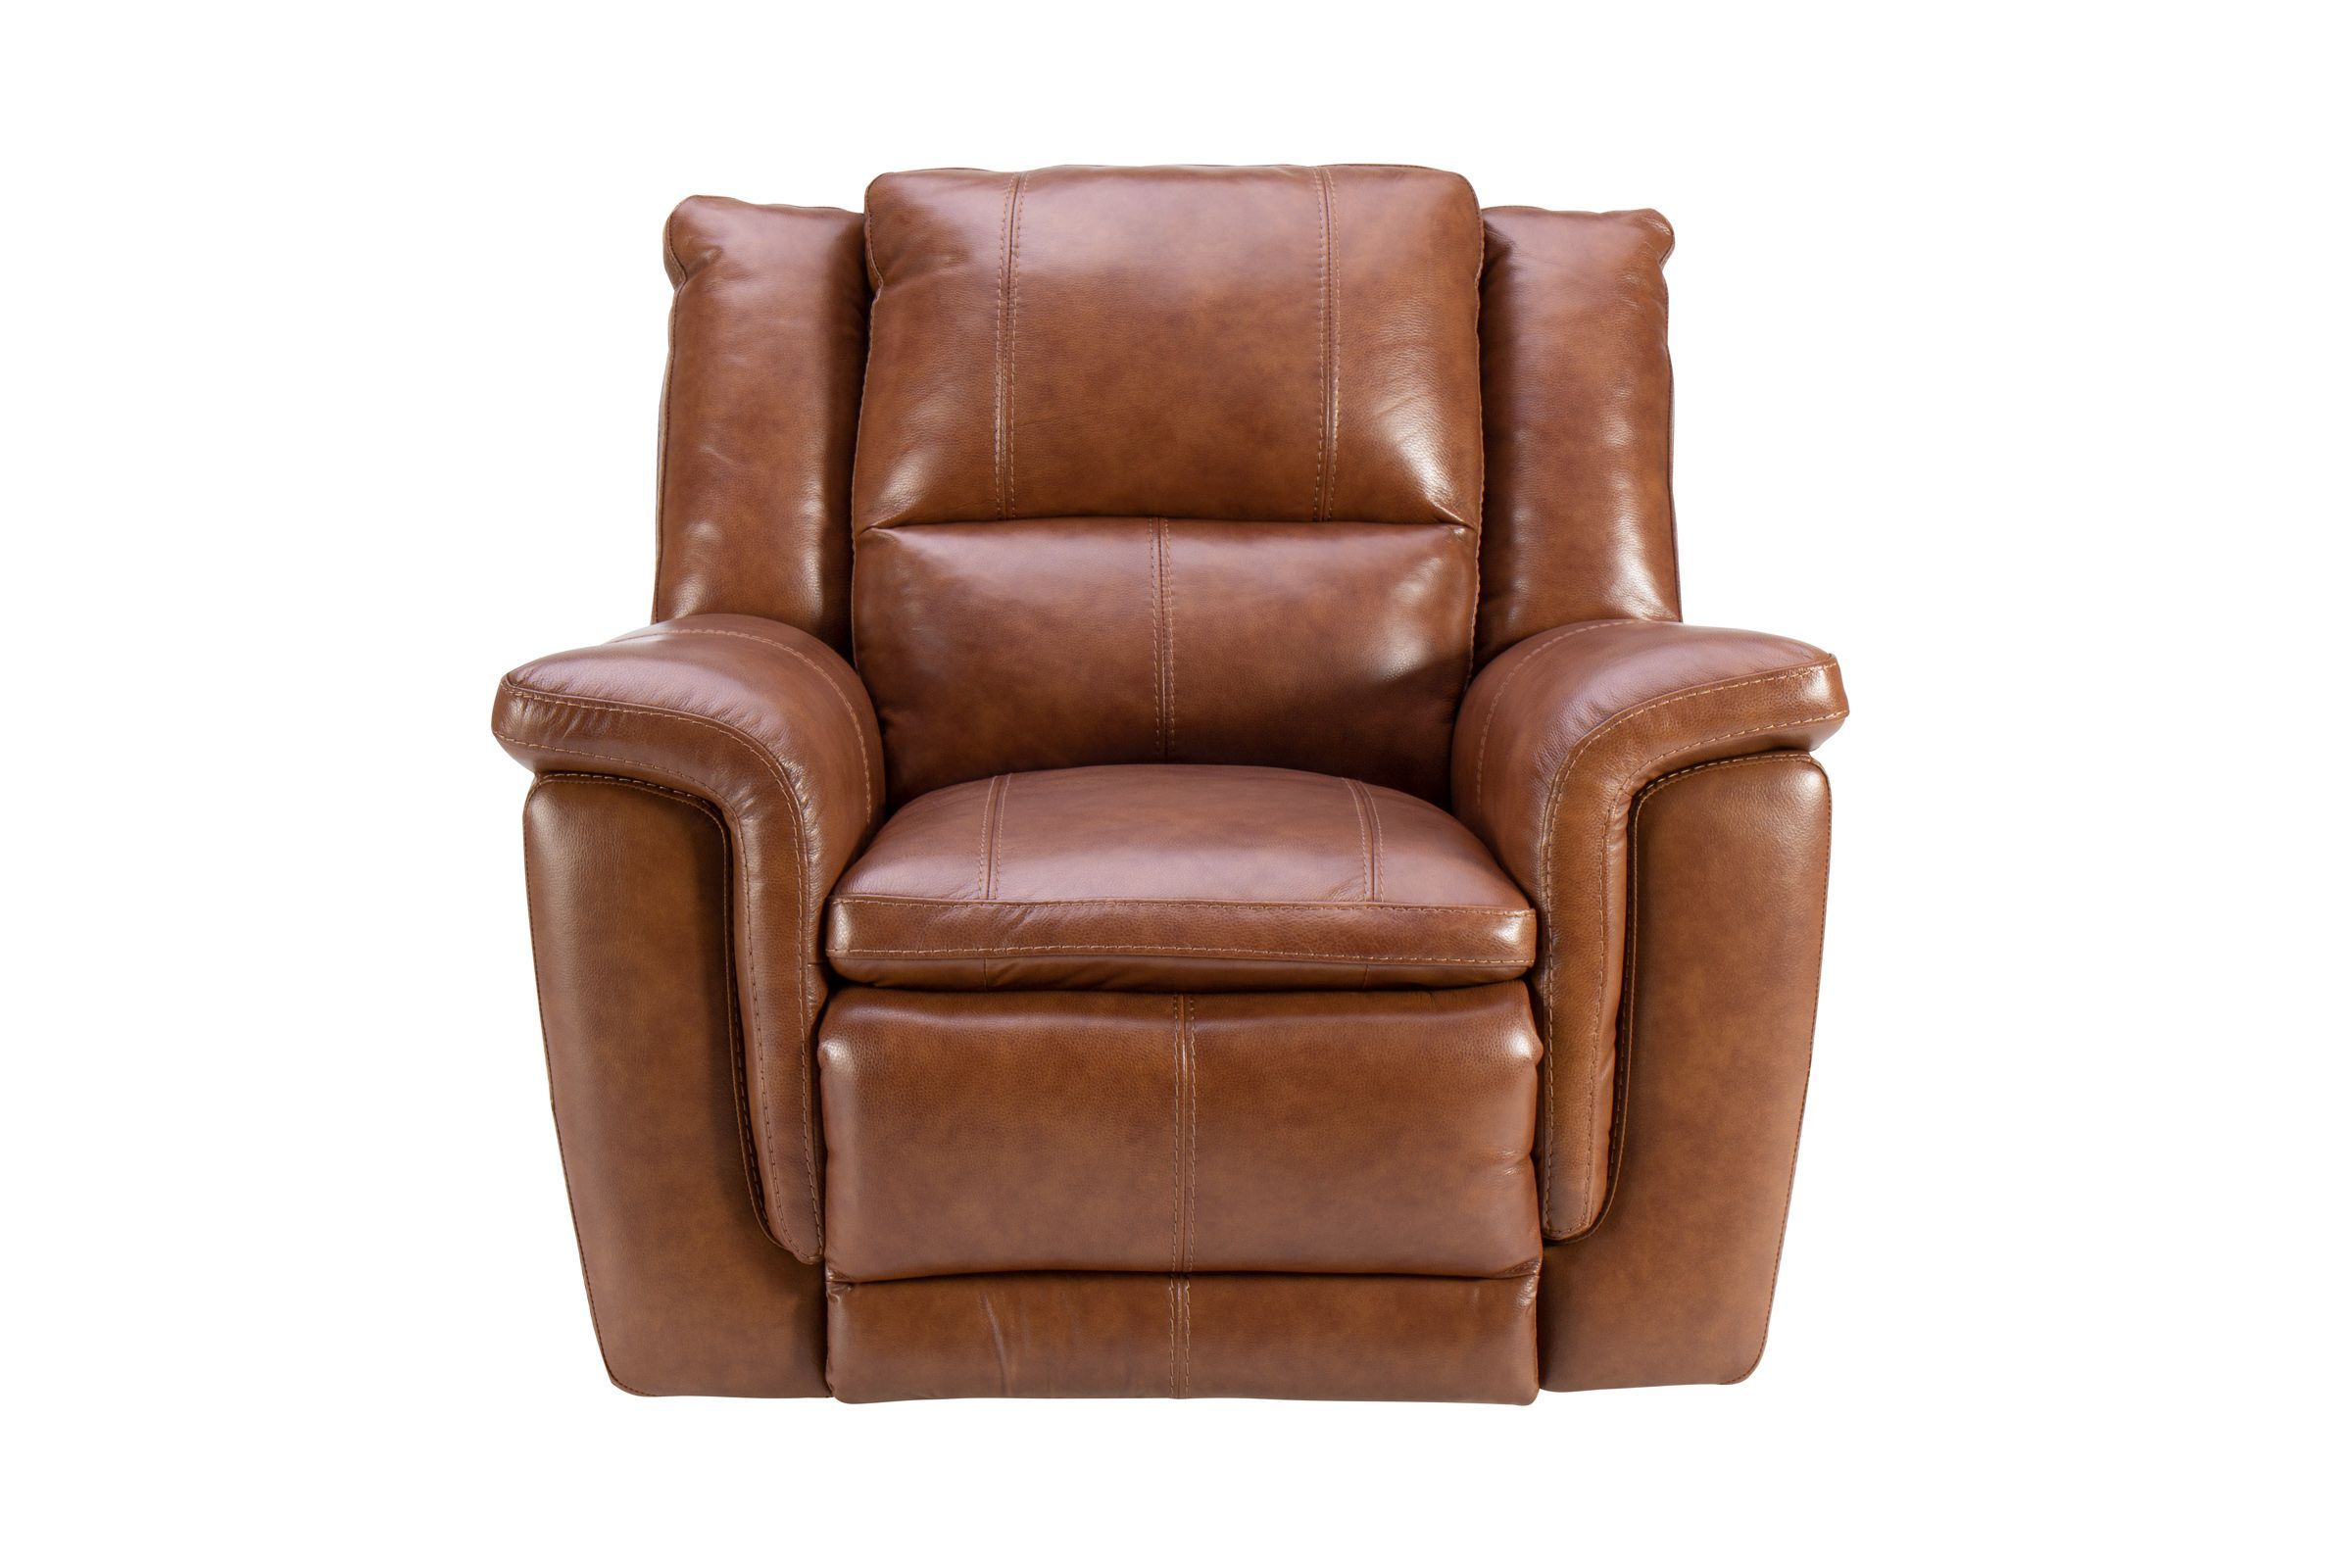 Enjoyable Kerrville Leather Power Recliner In 2019 Recliner Power Caraccident5 Cool Chair Designs And Ideas Caraccident5Info